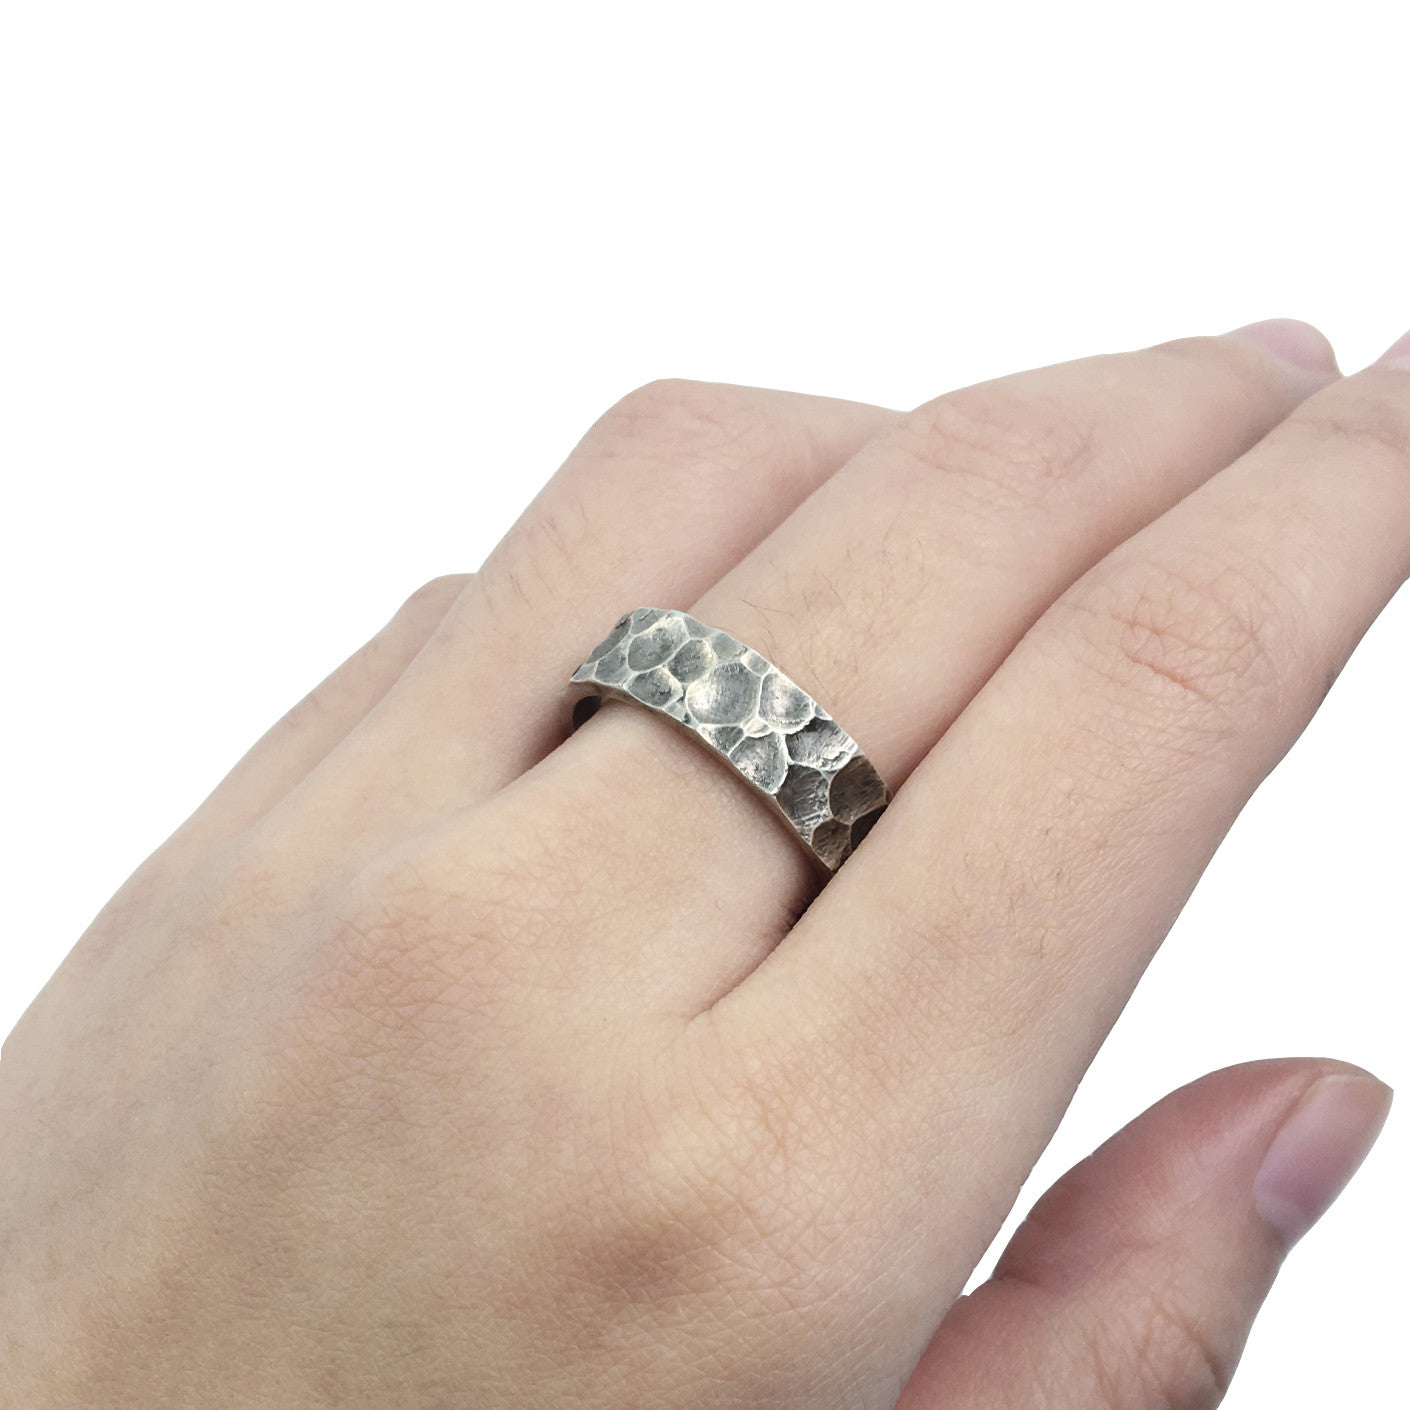 LS26 Silver Ring by Lion Studio - Laboratory S